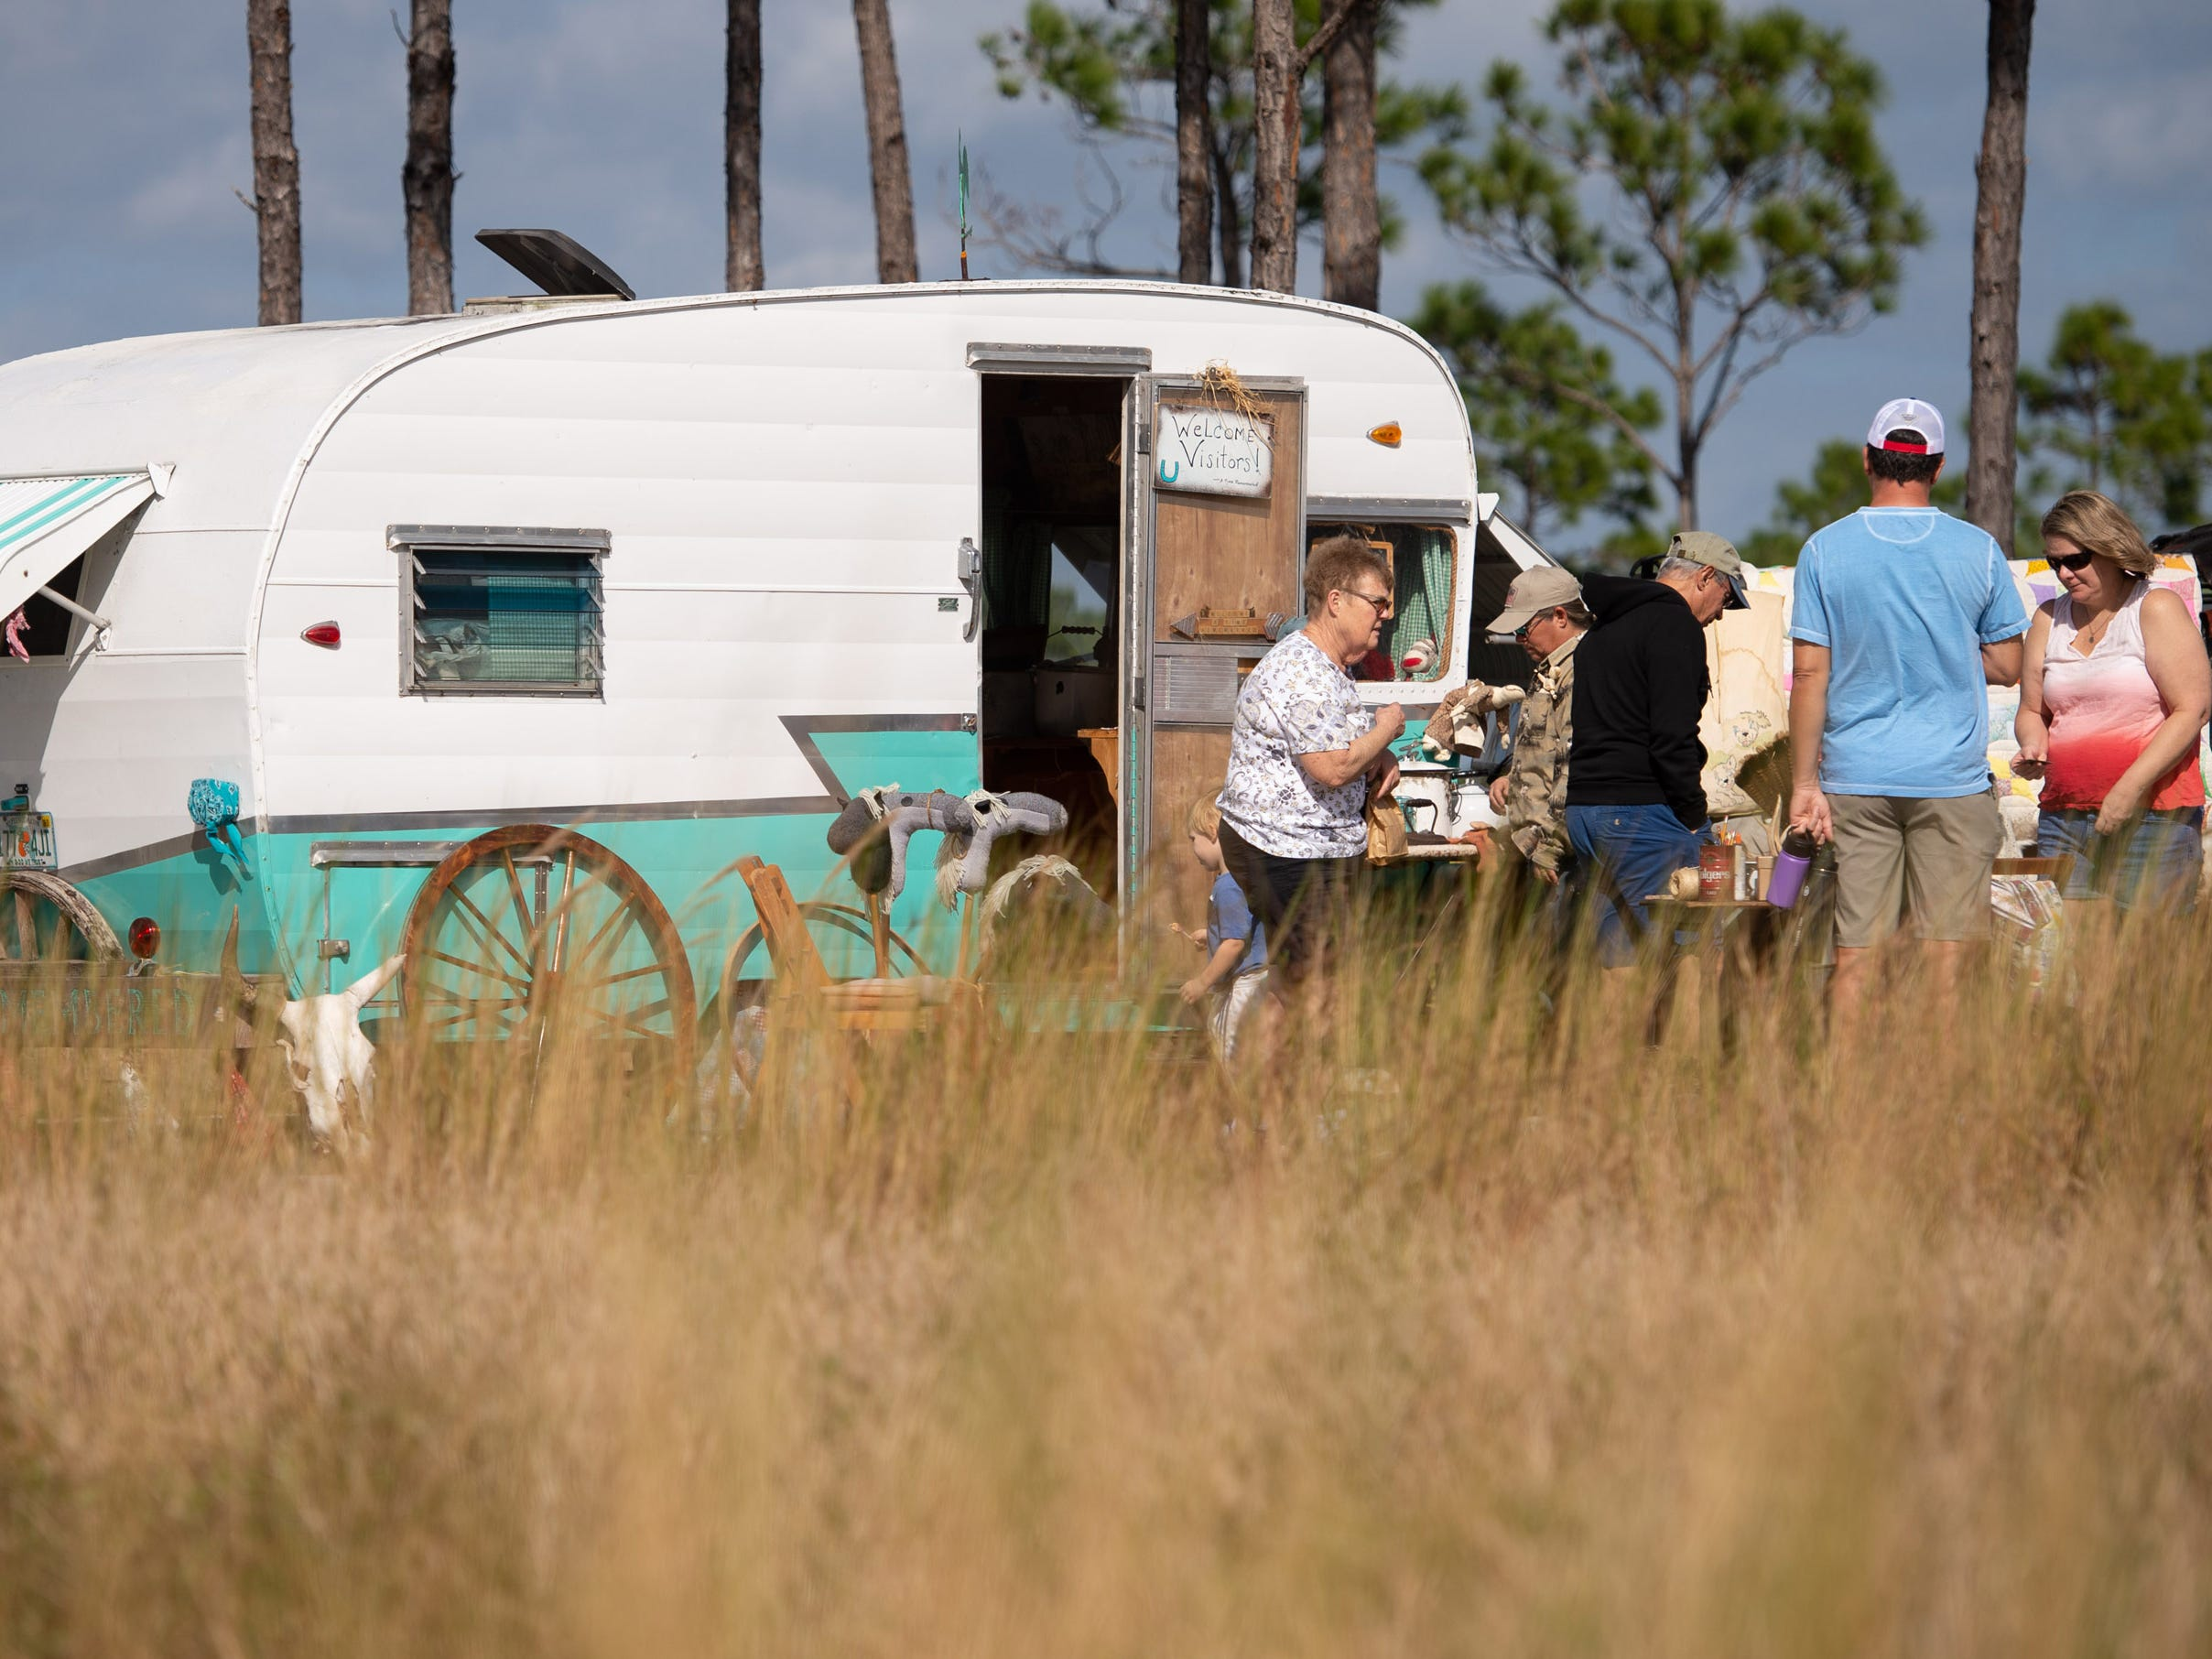 Miss Lucie's 10th annual Pioneer Day Festival featured exhibits and demonstrations showcasing how Floridians lived in the mid-19th century on Saturday, Jan. 5, 2019, at Savannas Preserve State Park in Port St. Lucie.